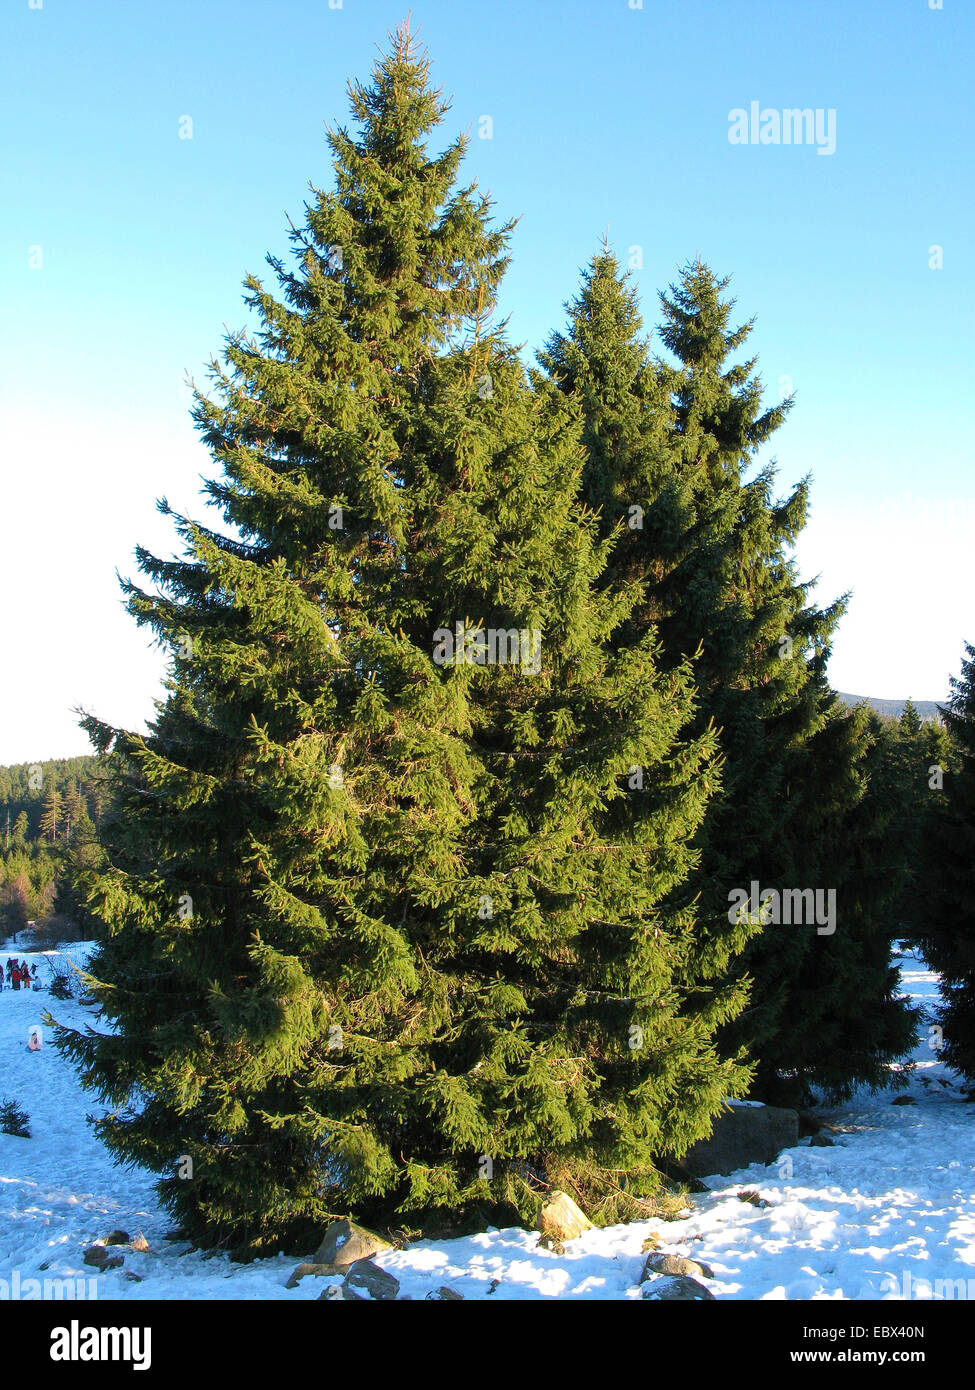 Norway spruce (Picea abies), in winter, Germany - Stock Image